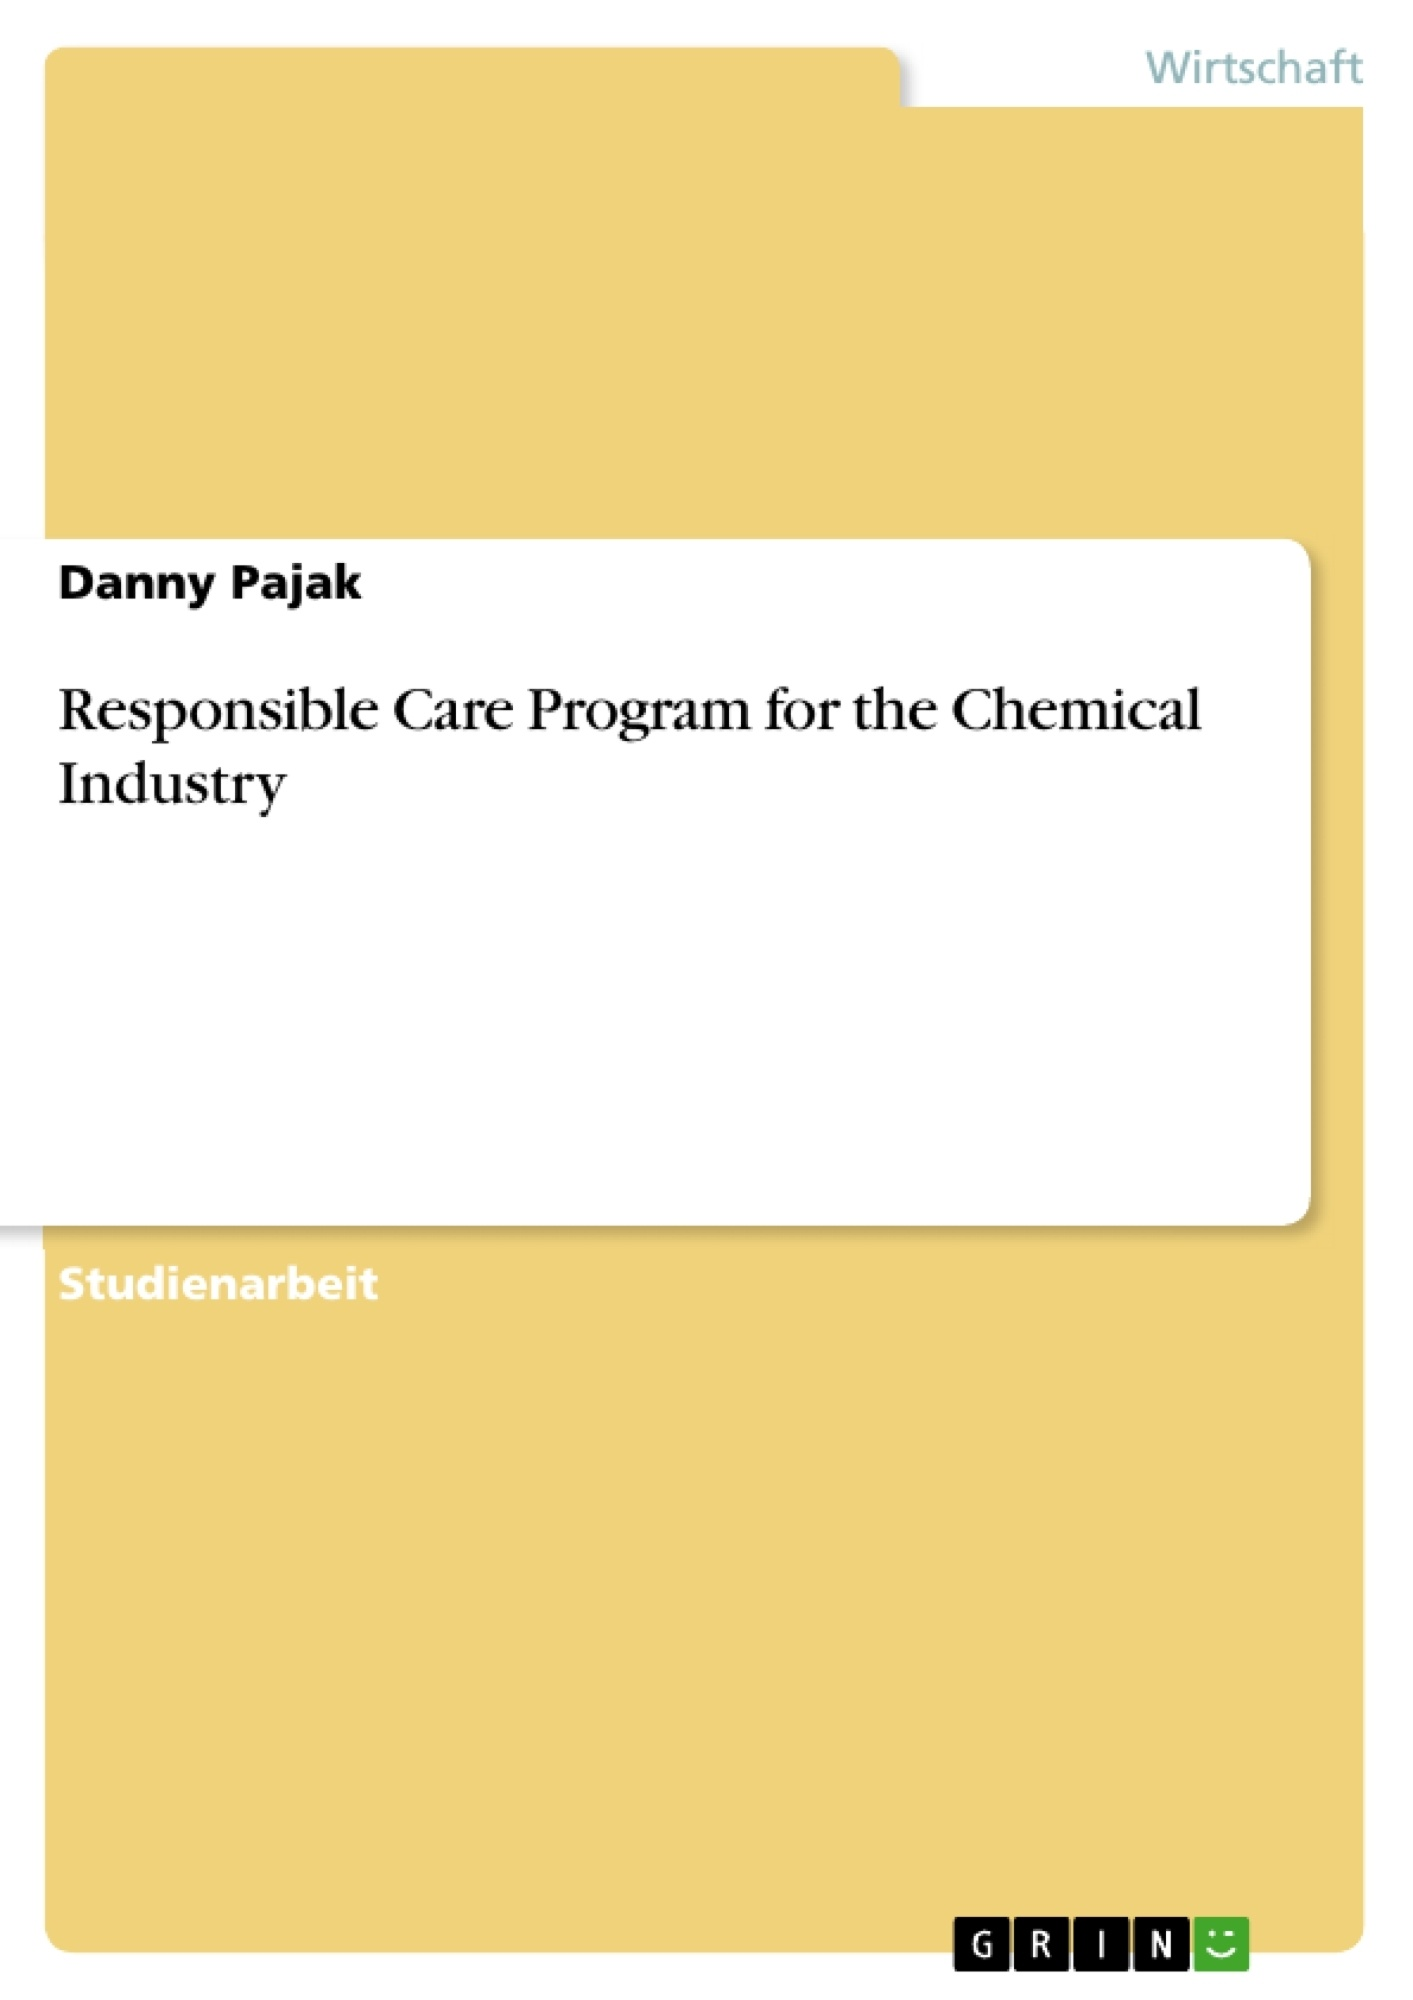 Titel: Responsible Care Program for the Chemical Industry